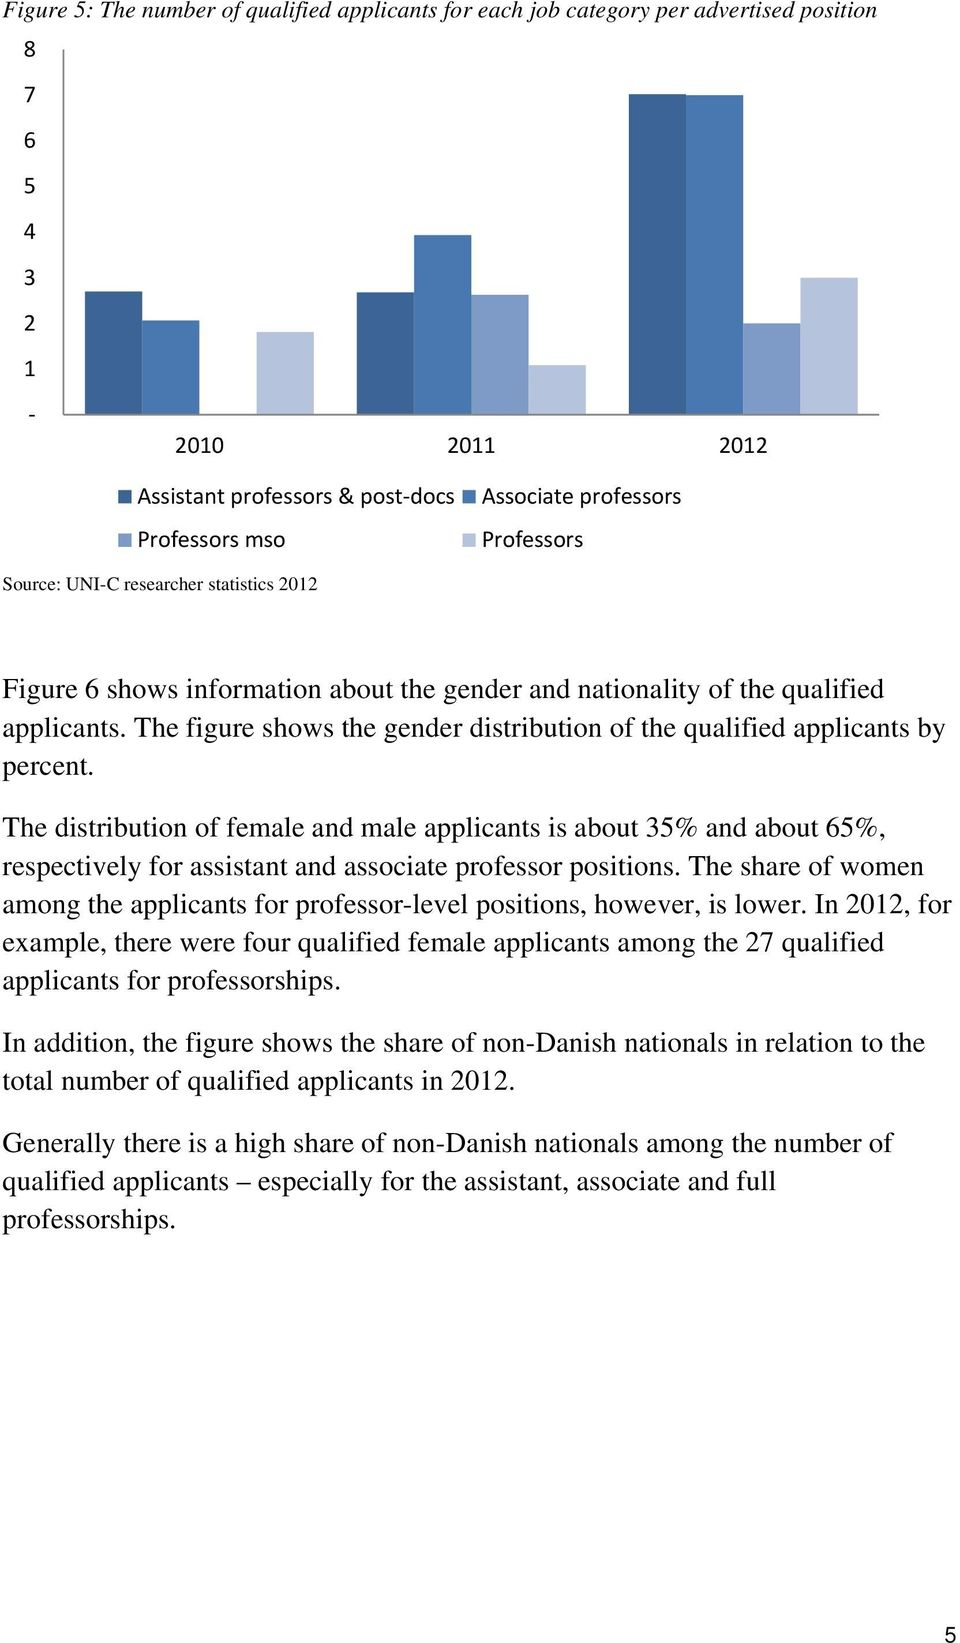 The figure shows the gender distribution of the qualified applicants by percent.